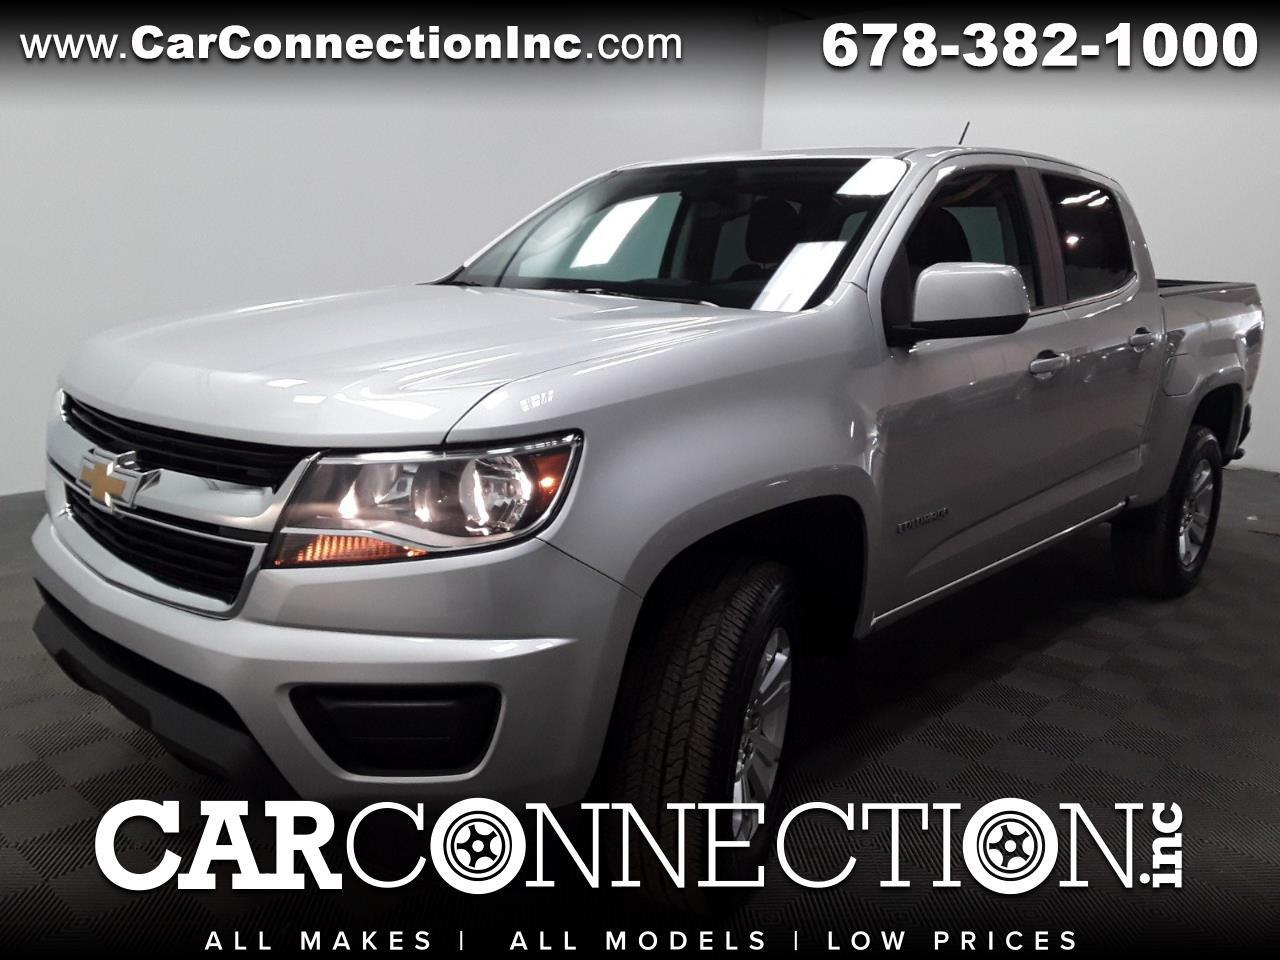 2019 Chevrolet Colorado 1LT Crew Cab 4WD